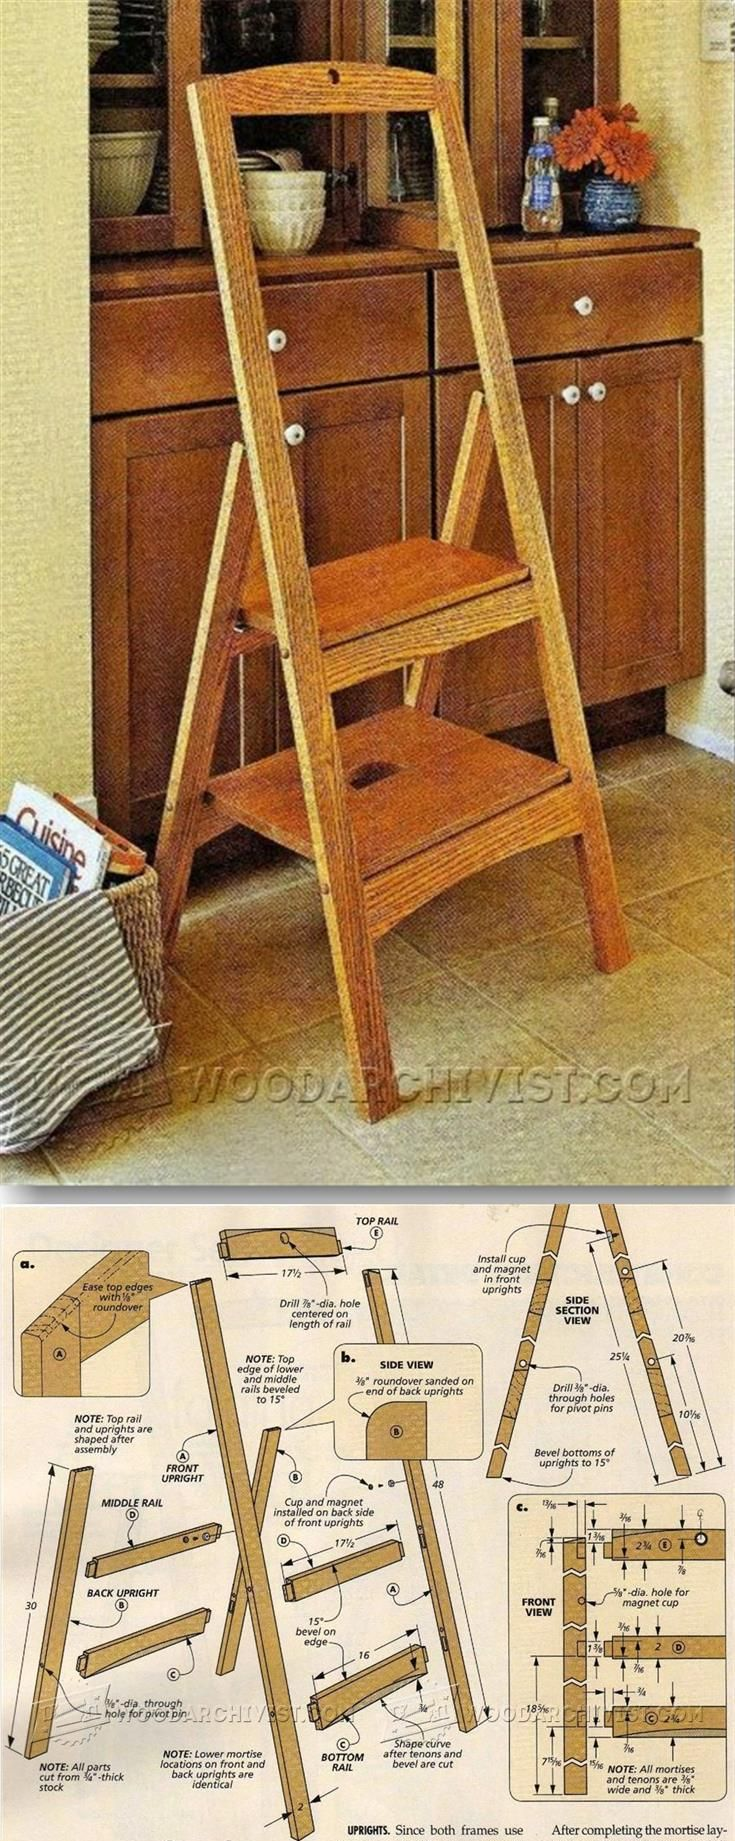 Folding Step Stool Plans - Furniture Plans and Projects | WoodArchivist.com & 12 best Build a step stool images on Pinterest | Step stools ... islam-shia.org